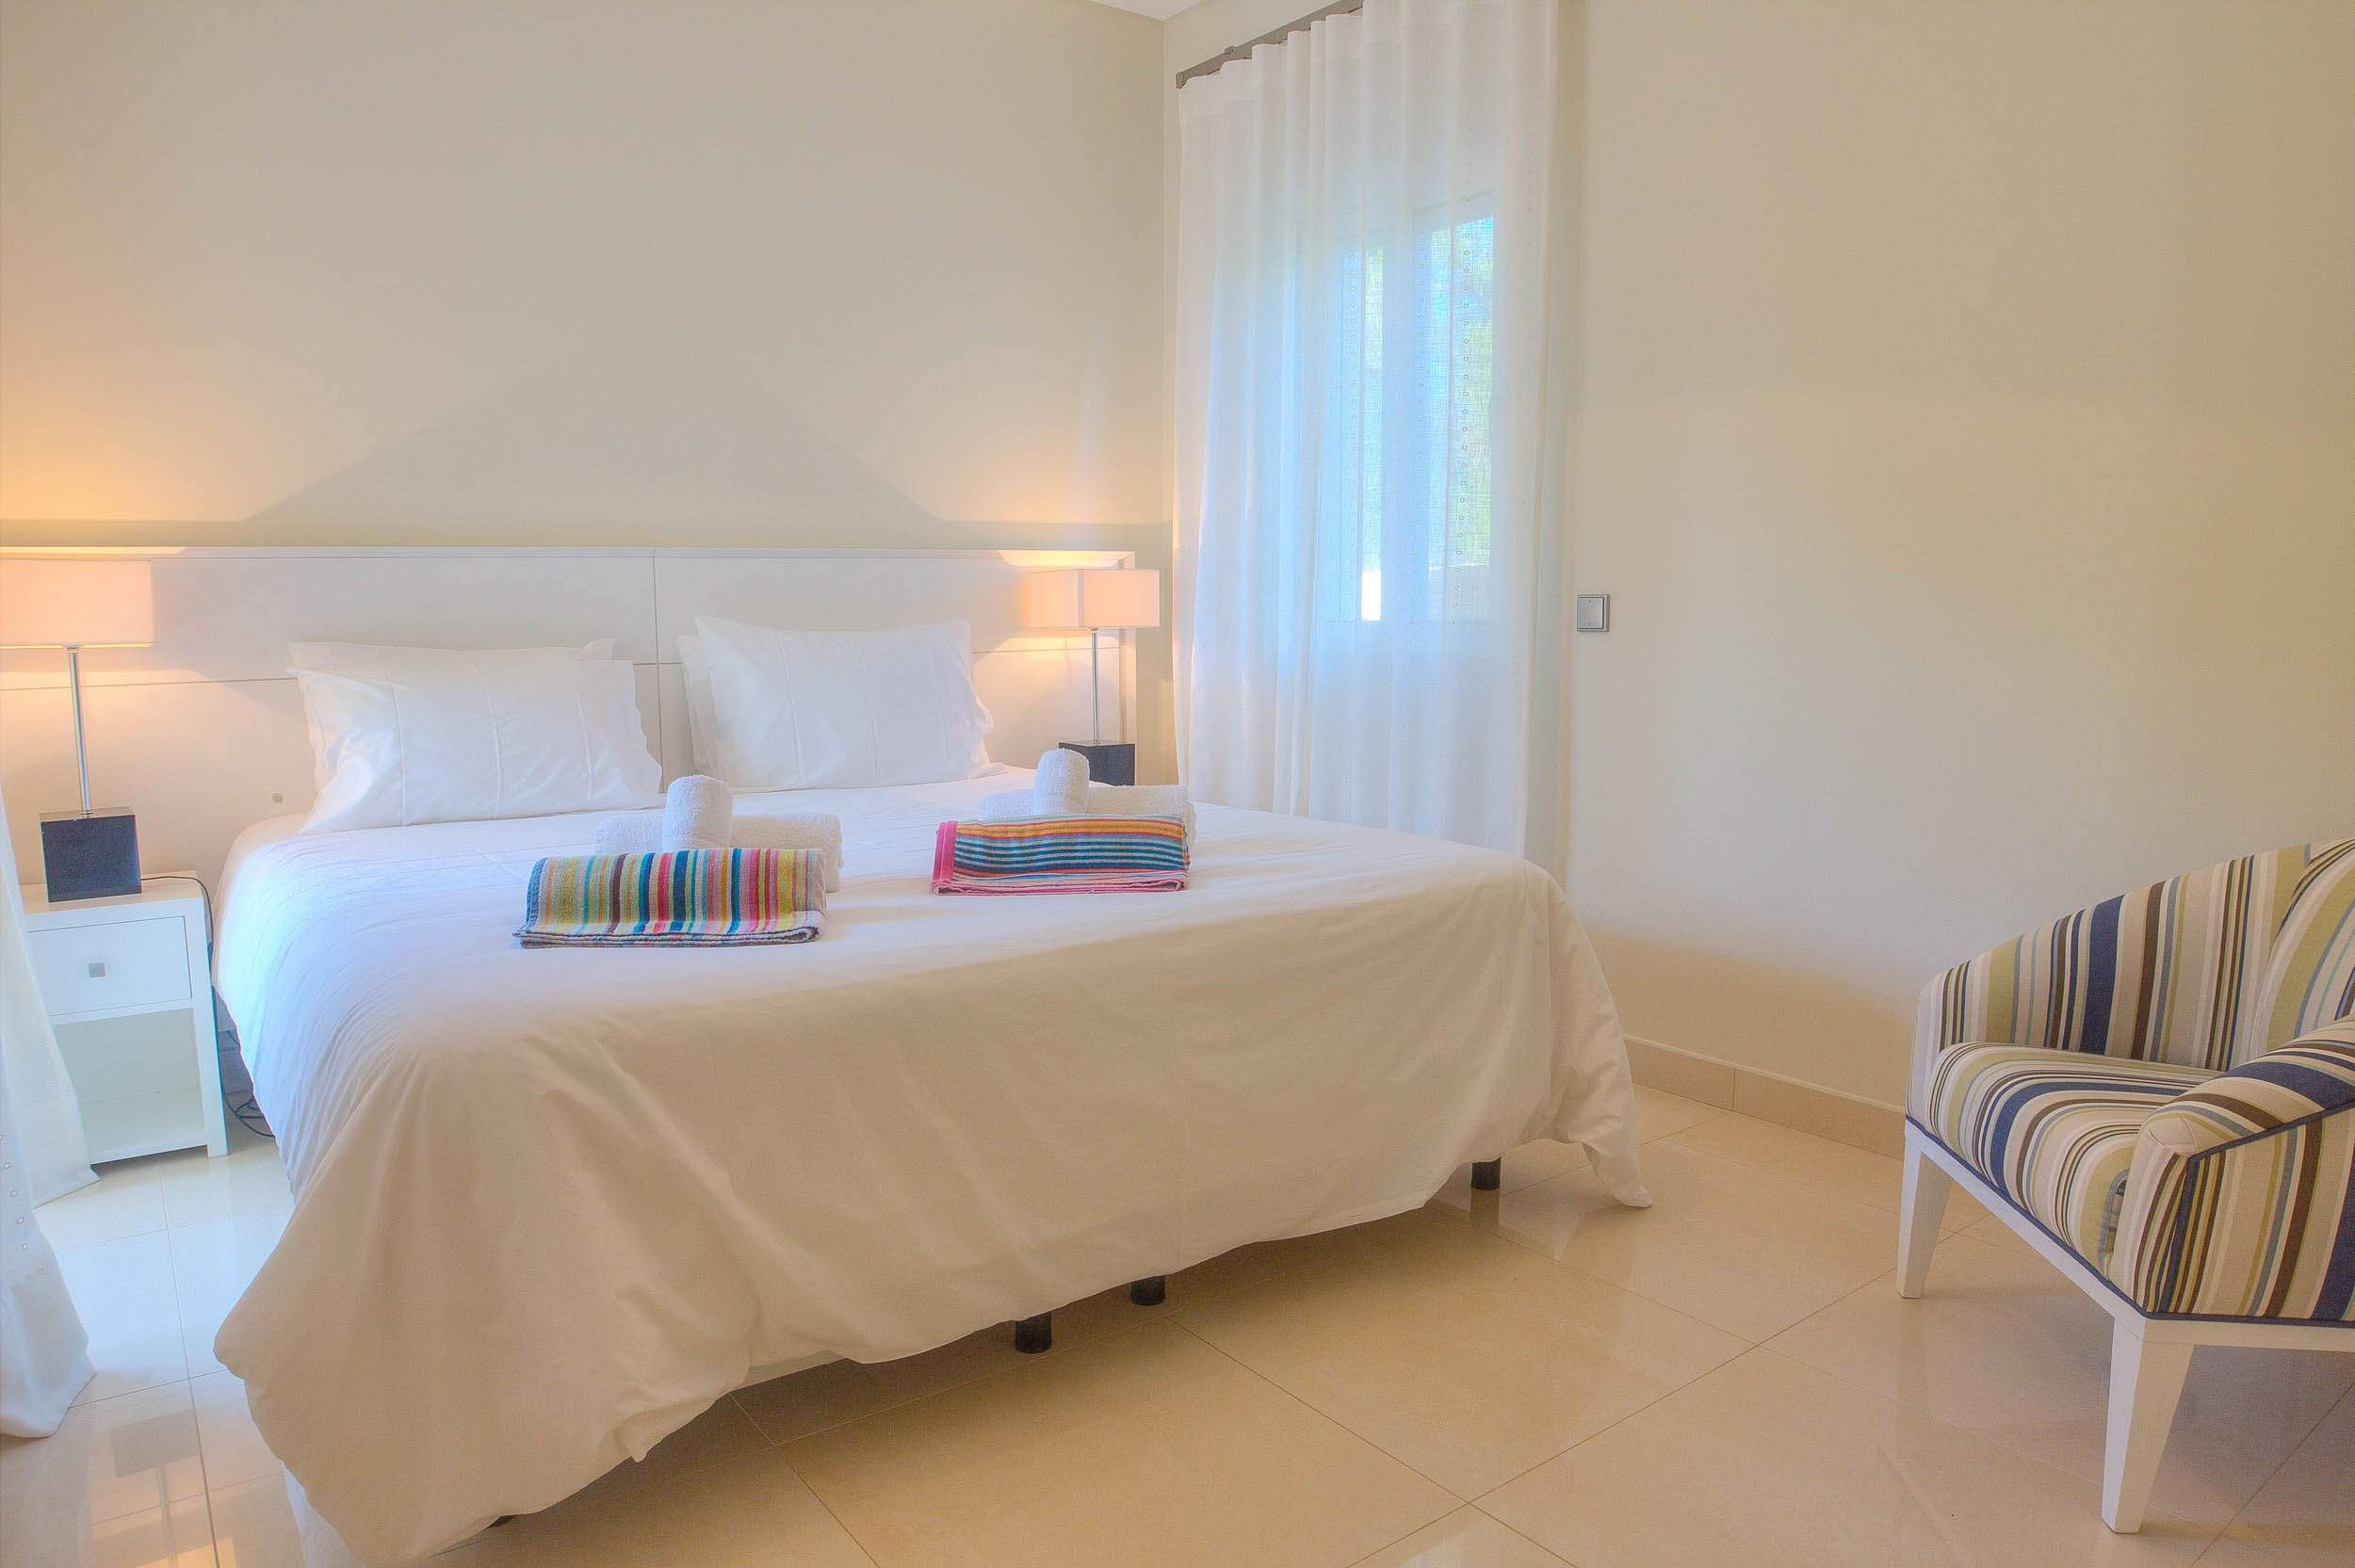 Villa Vida Doce, 6 bedroom villa in Vilamoura Area, Algarve Photo #12